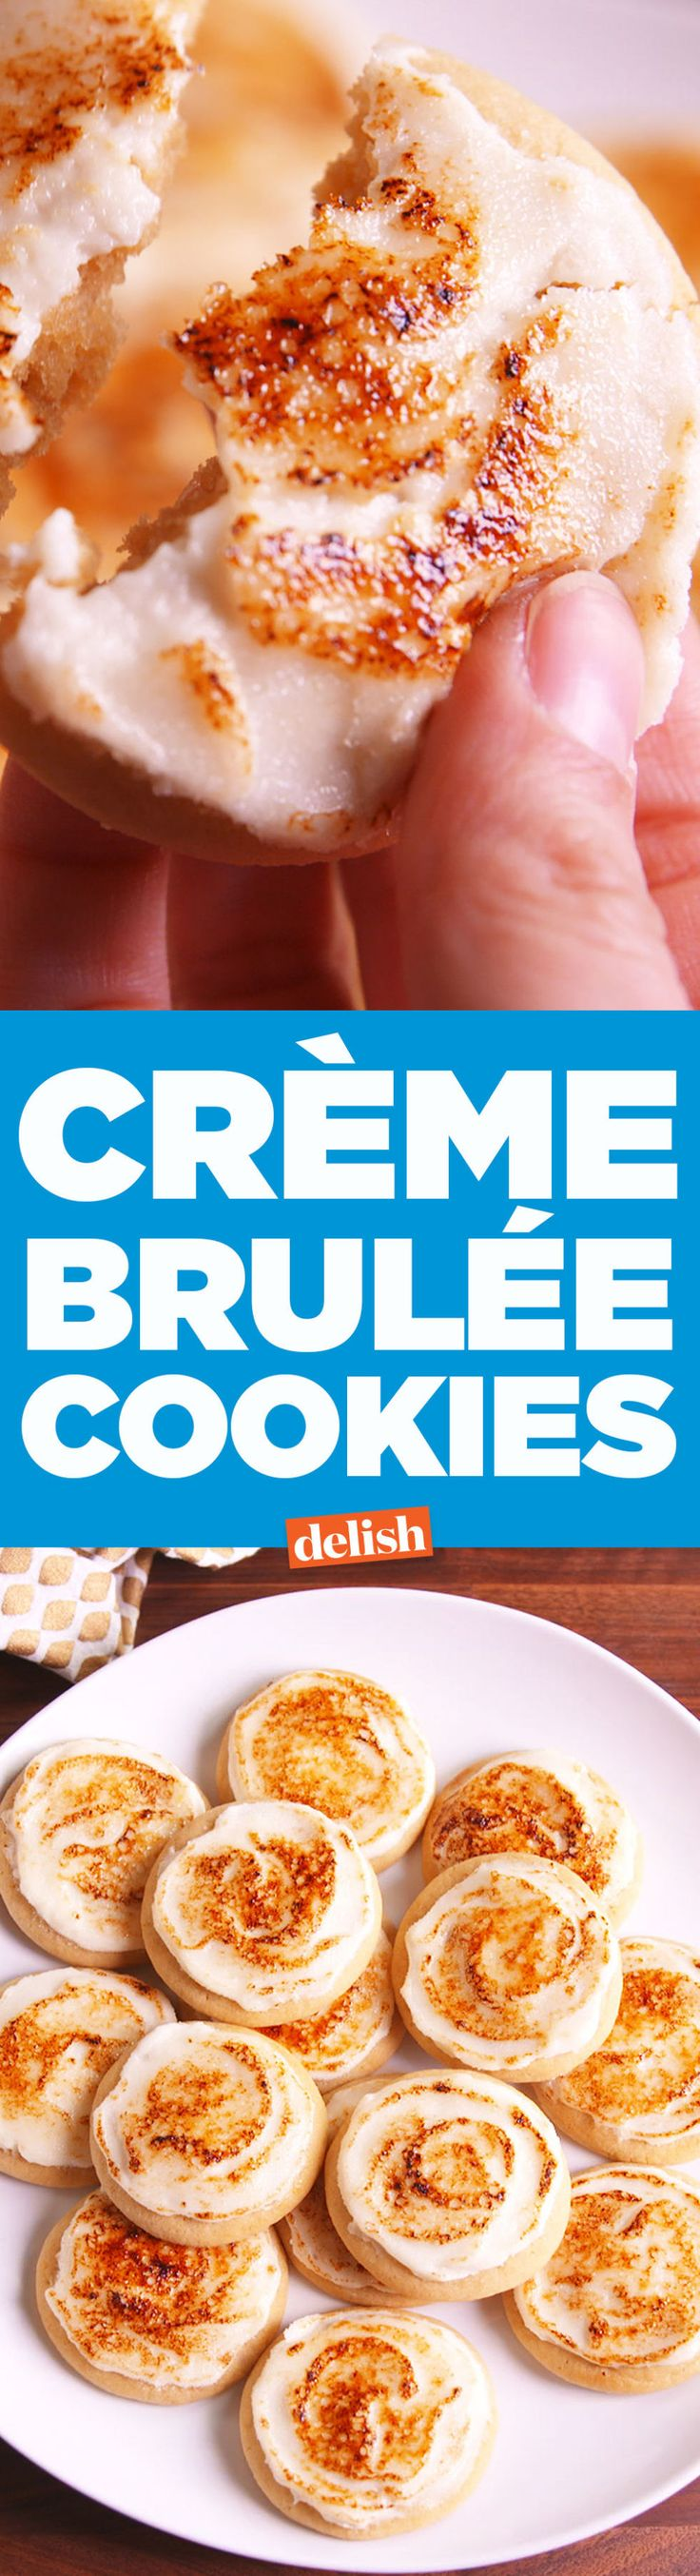 Your Cookie Swap Will Freak Over Crème Brûlée Sugar Cookies  - Delish.com